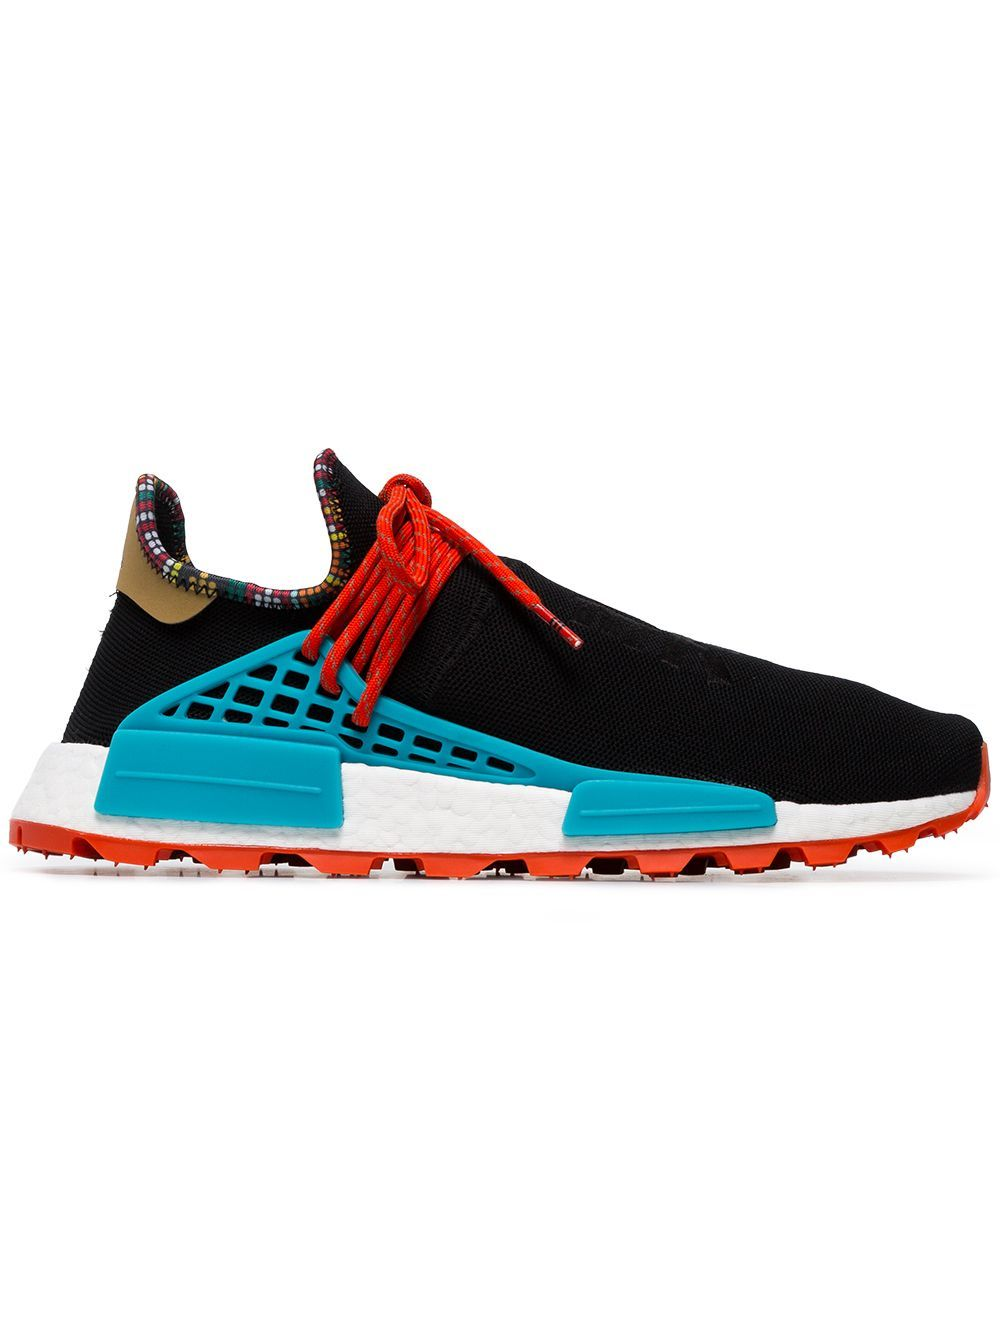 71883a777add ADIDAS ORIGINALS ADIDAS X PHARRELL WILLIAMS BLACK HUMAN BODY NMD SNEAKERS -  黑色.  adidasoriginals  shoes